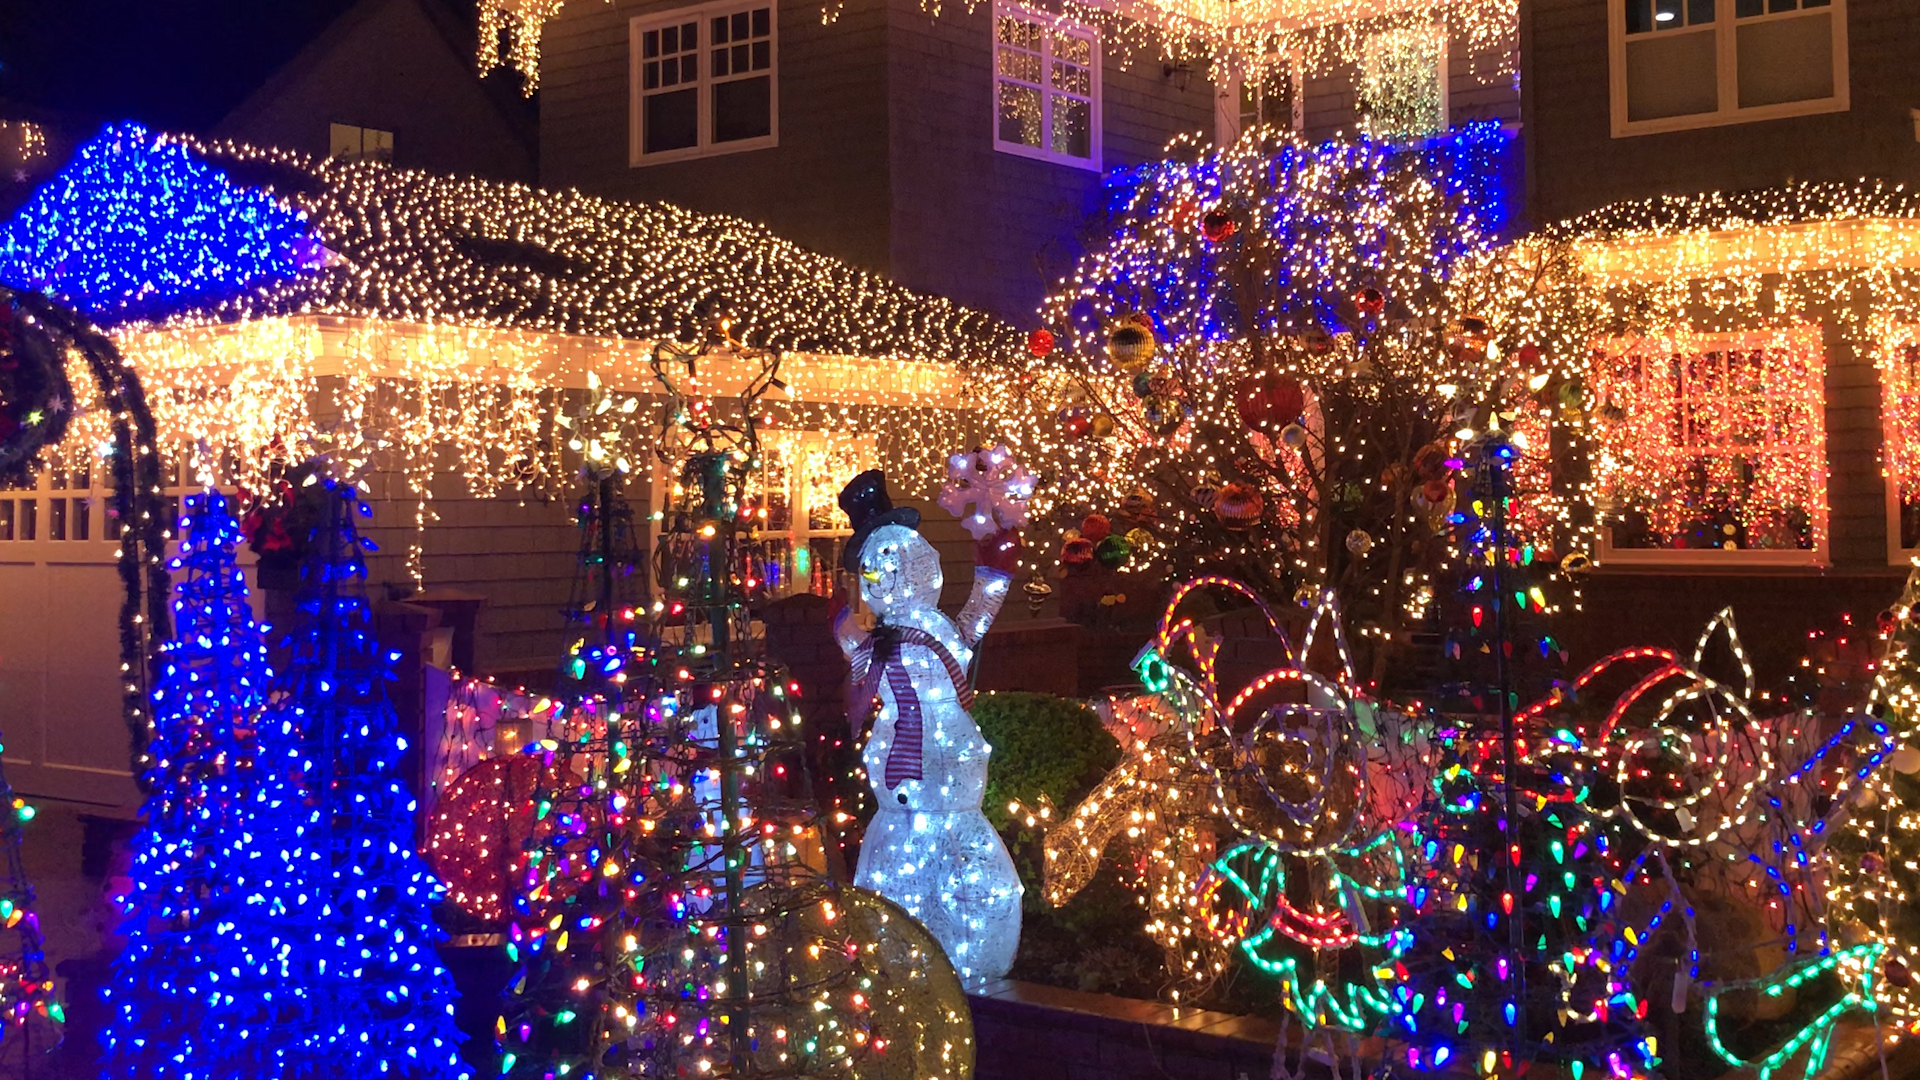 Neighbors On Eucalyptus Street Come Together To Decorate Their Entire Street With Stunning Christmas Lights Abc7 San Francisco